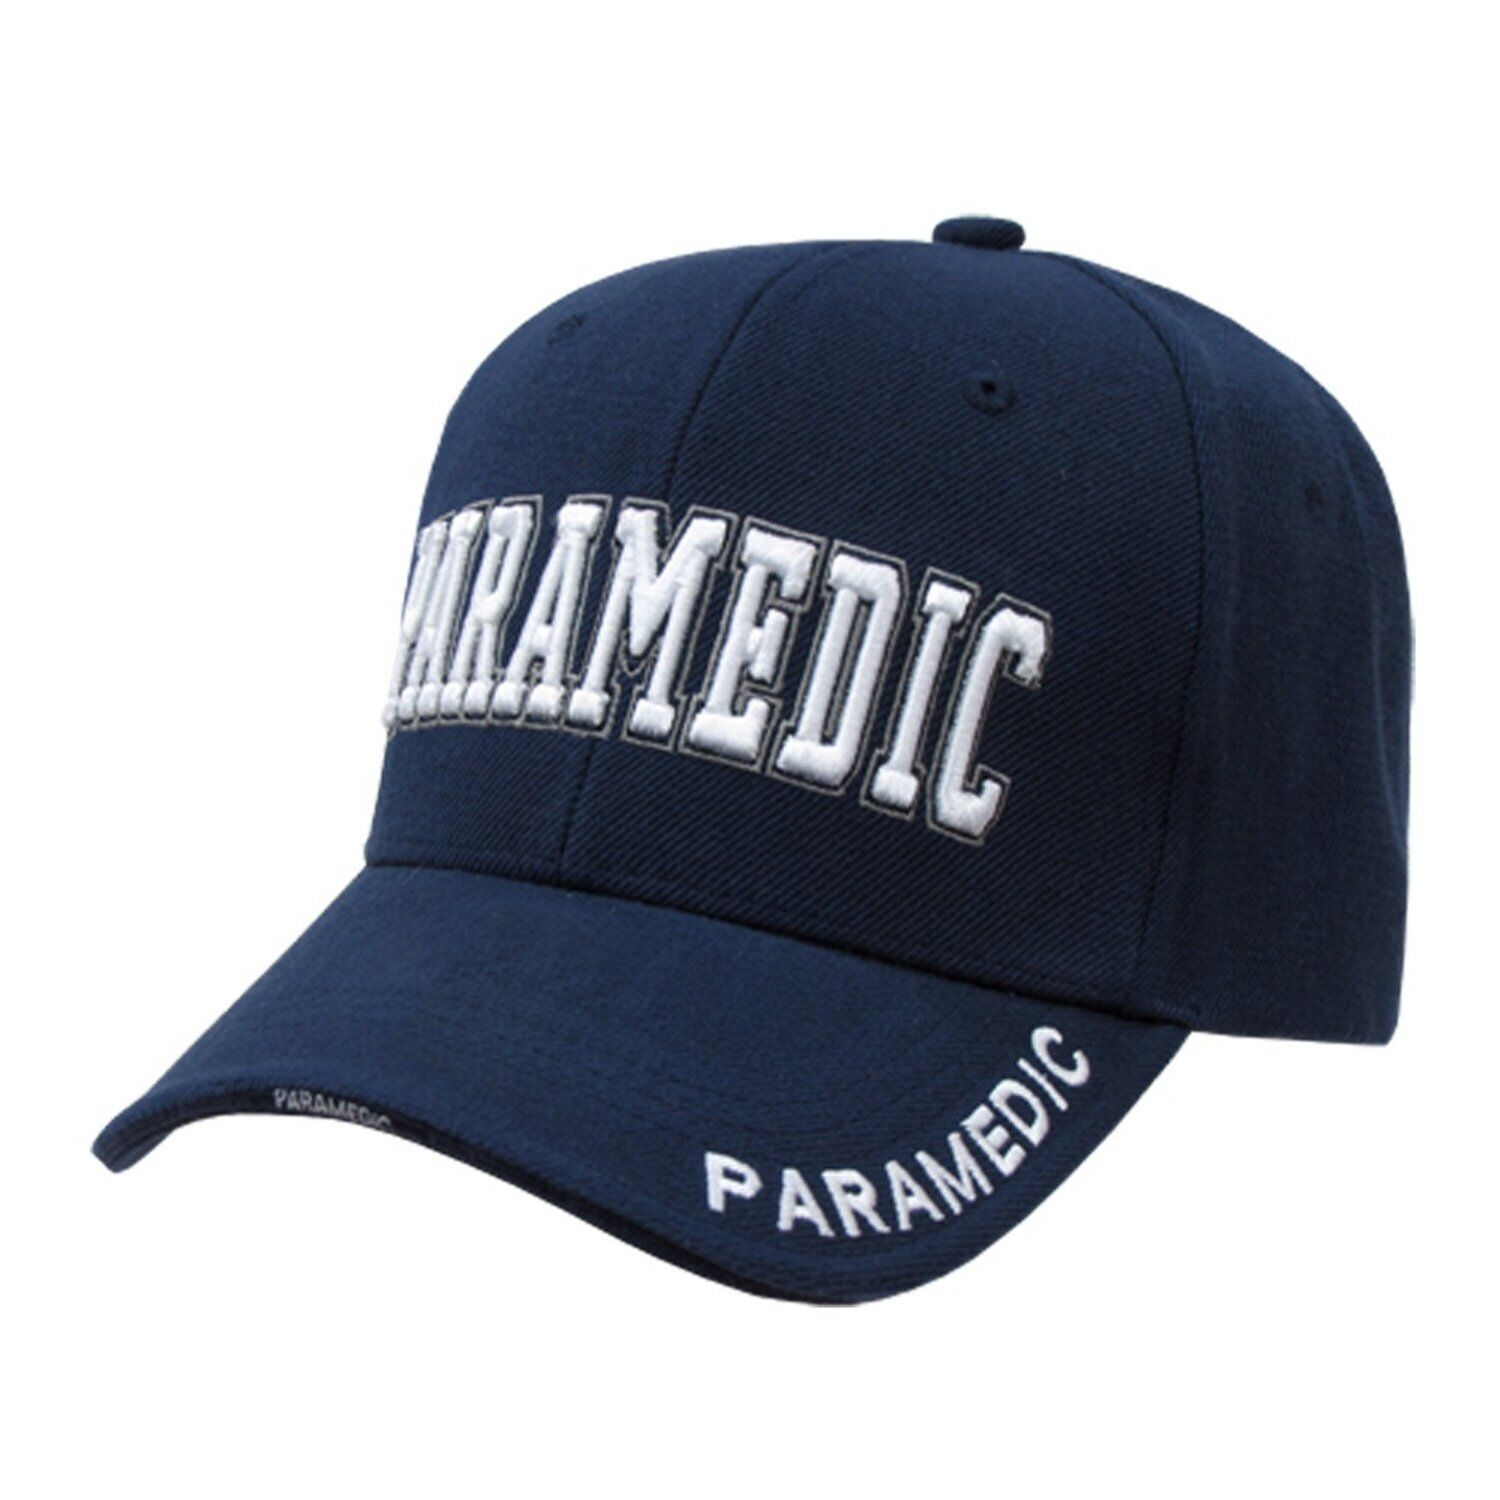 navy blue paramedic emt baseball cap caps hat hats ebay